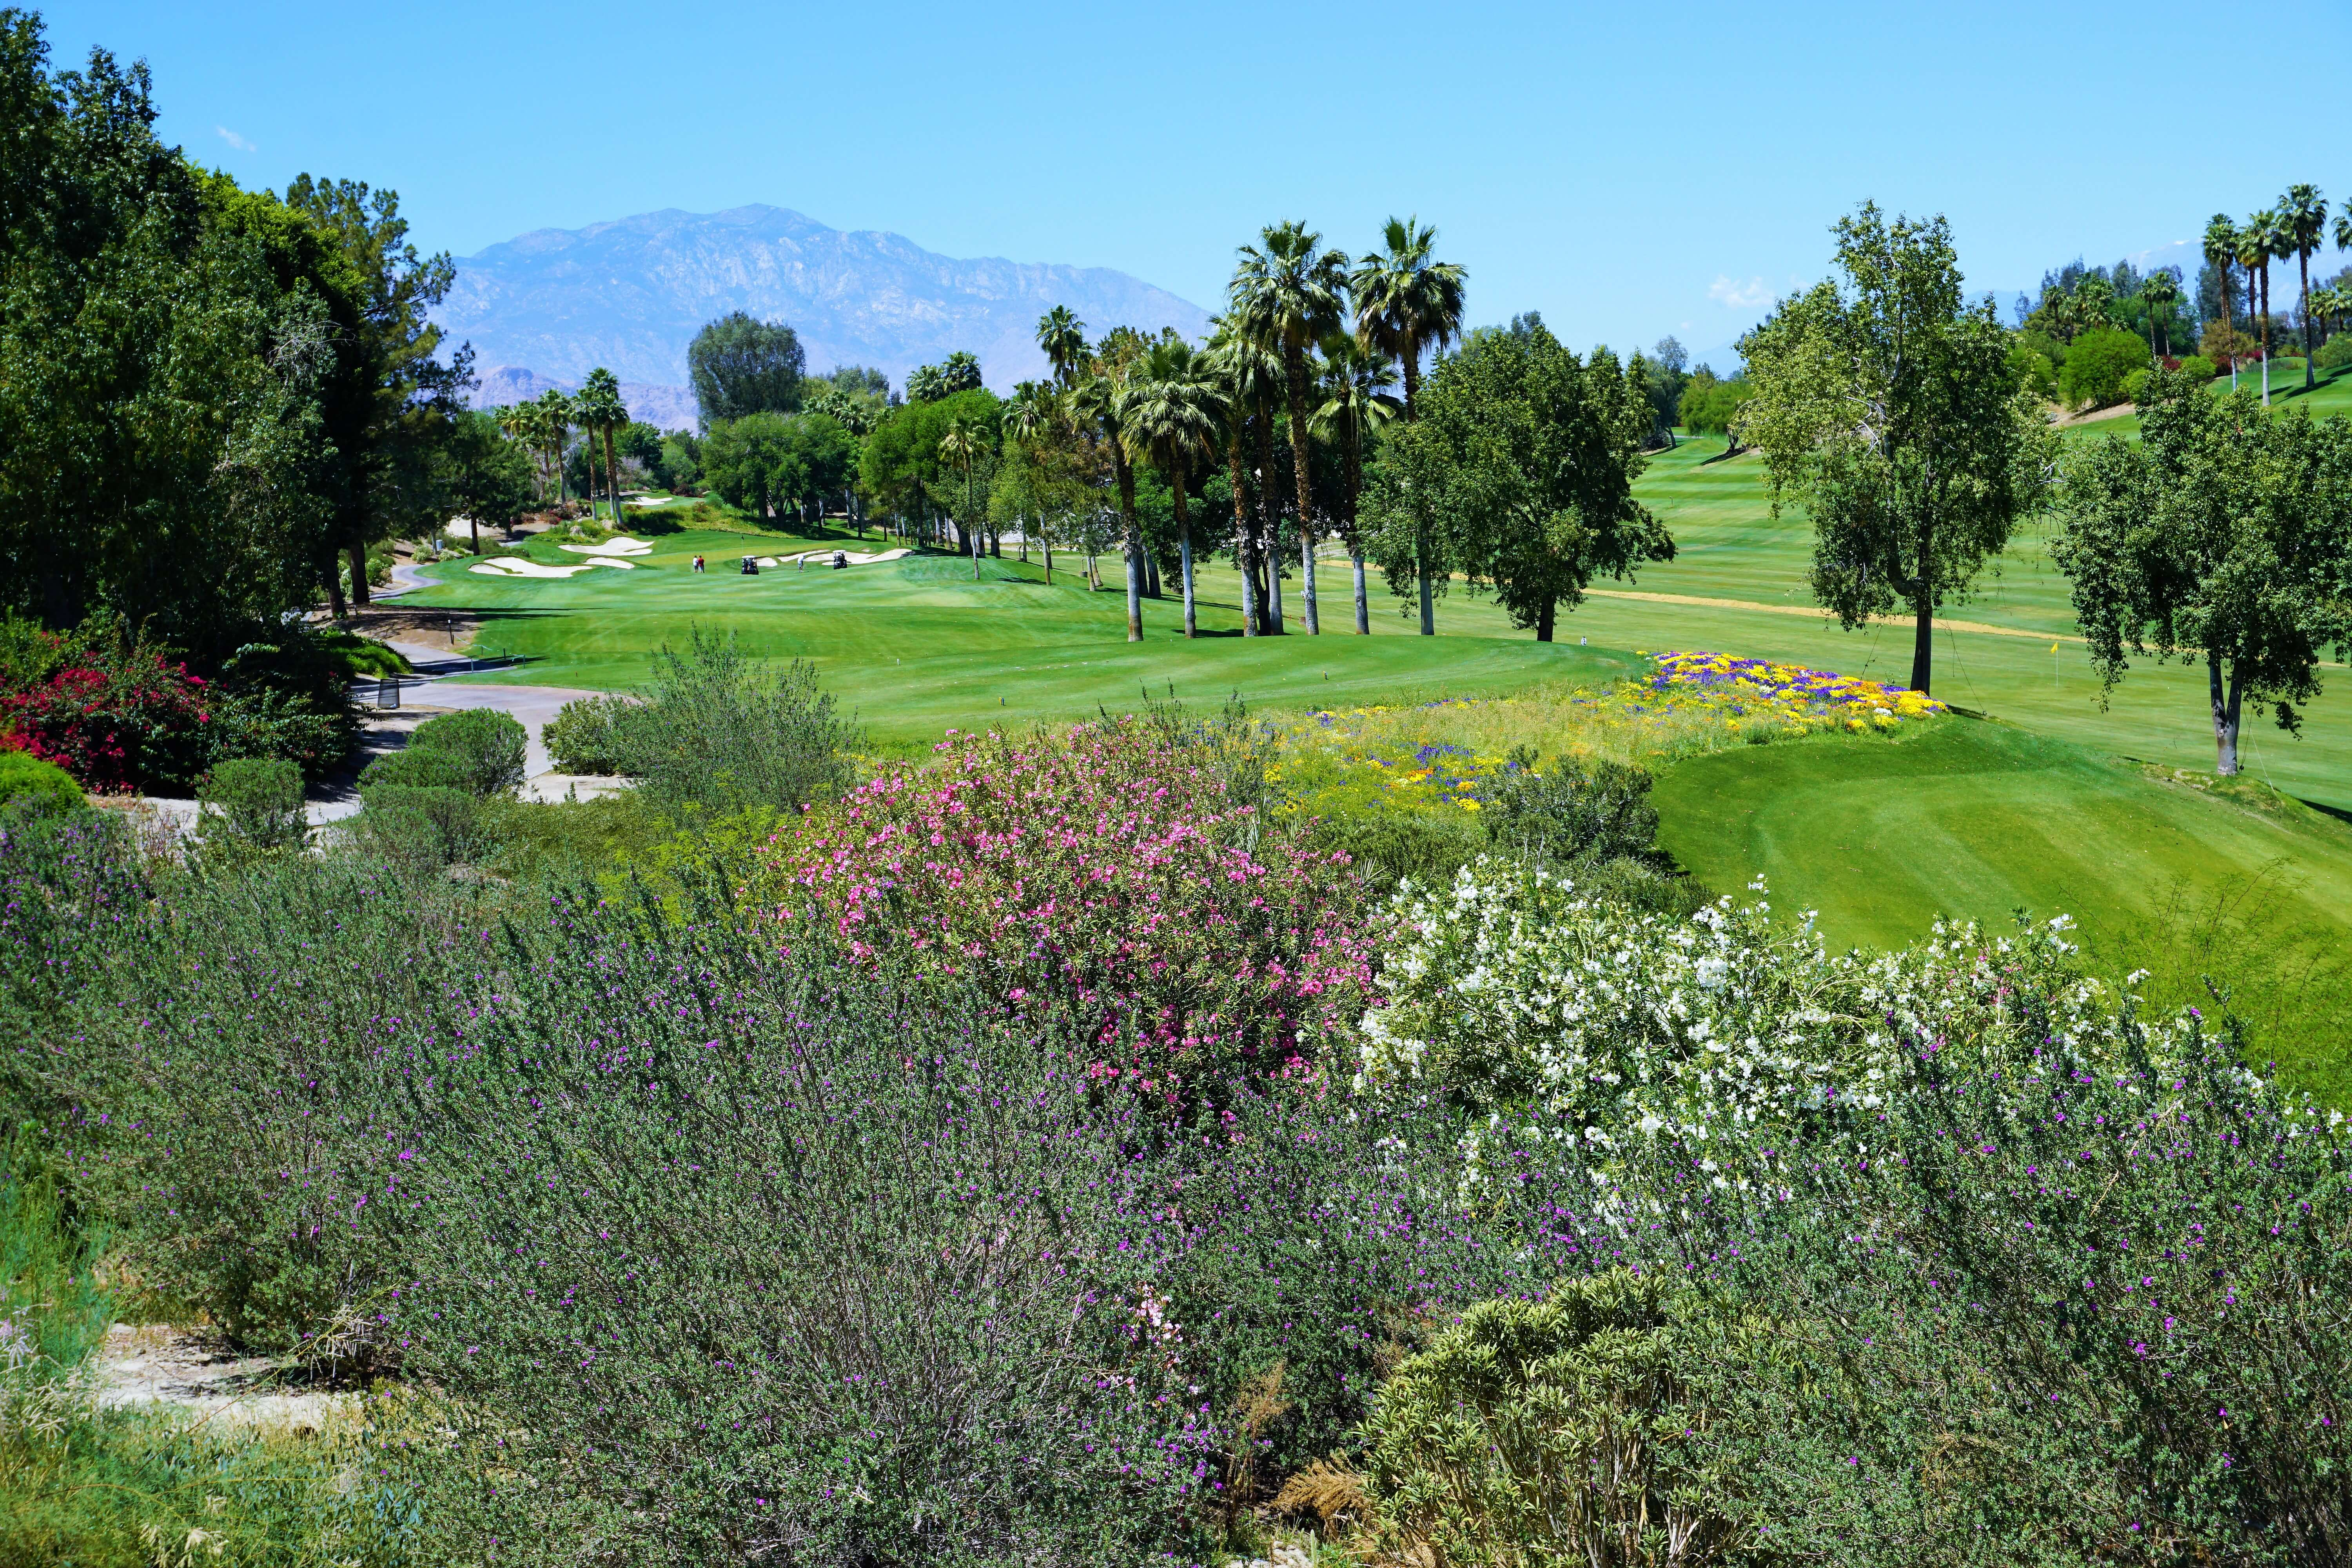 A golf course in Palm Springs